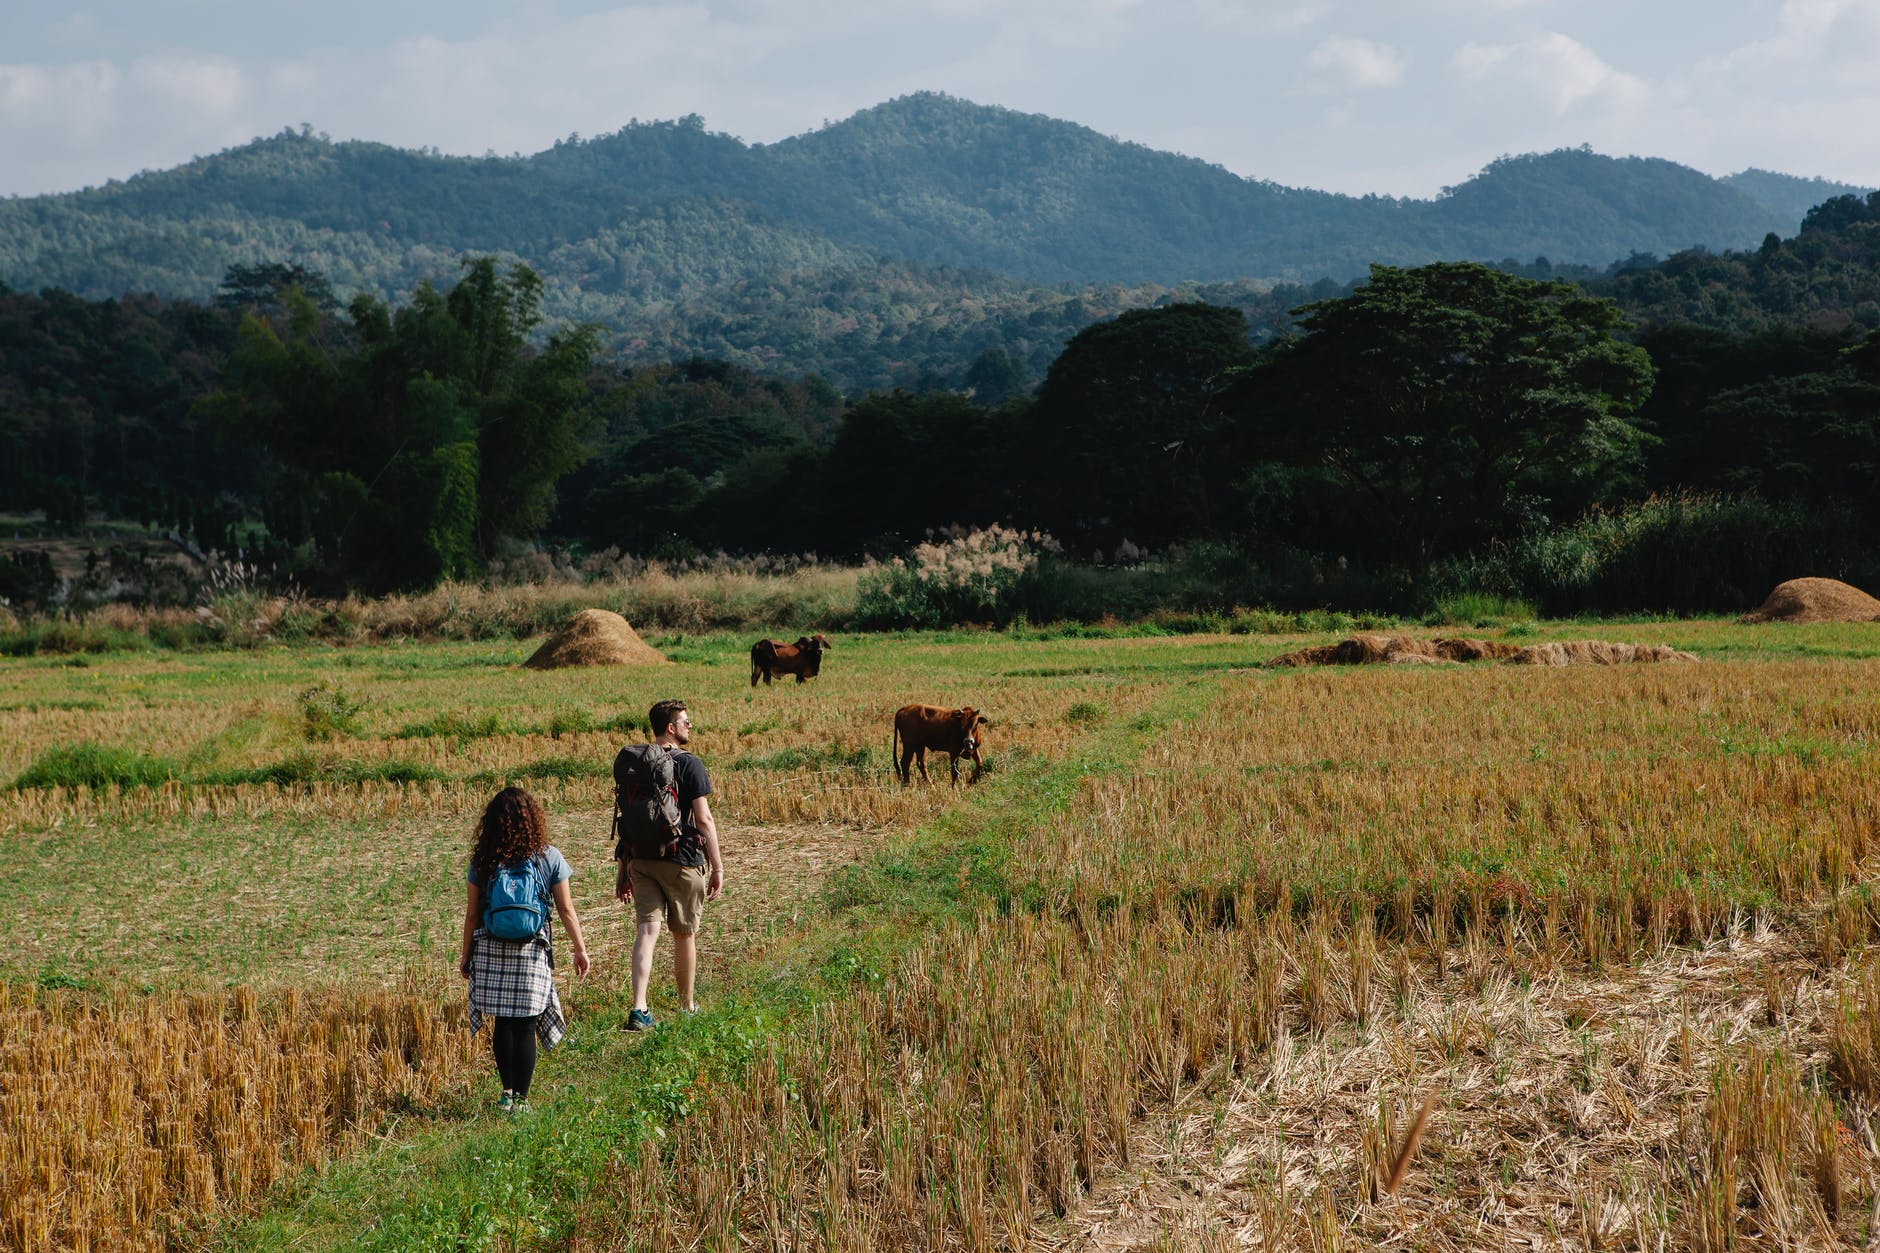 unrecognizable couple of travelers walking on grassy field with cows